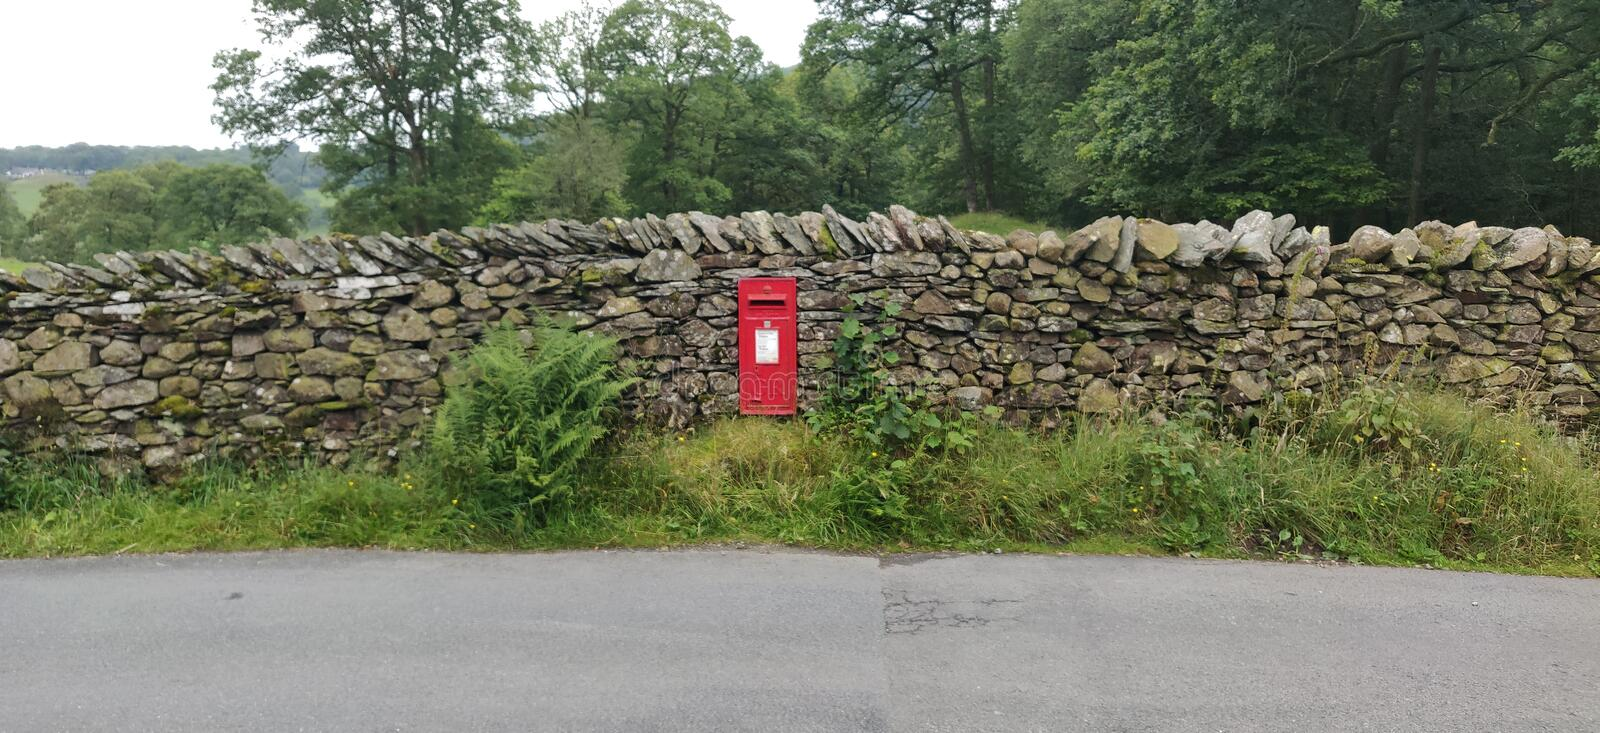 Red postbox in Drystone wall royalty free stock image